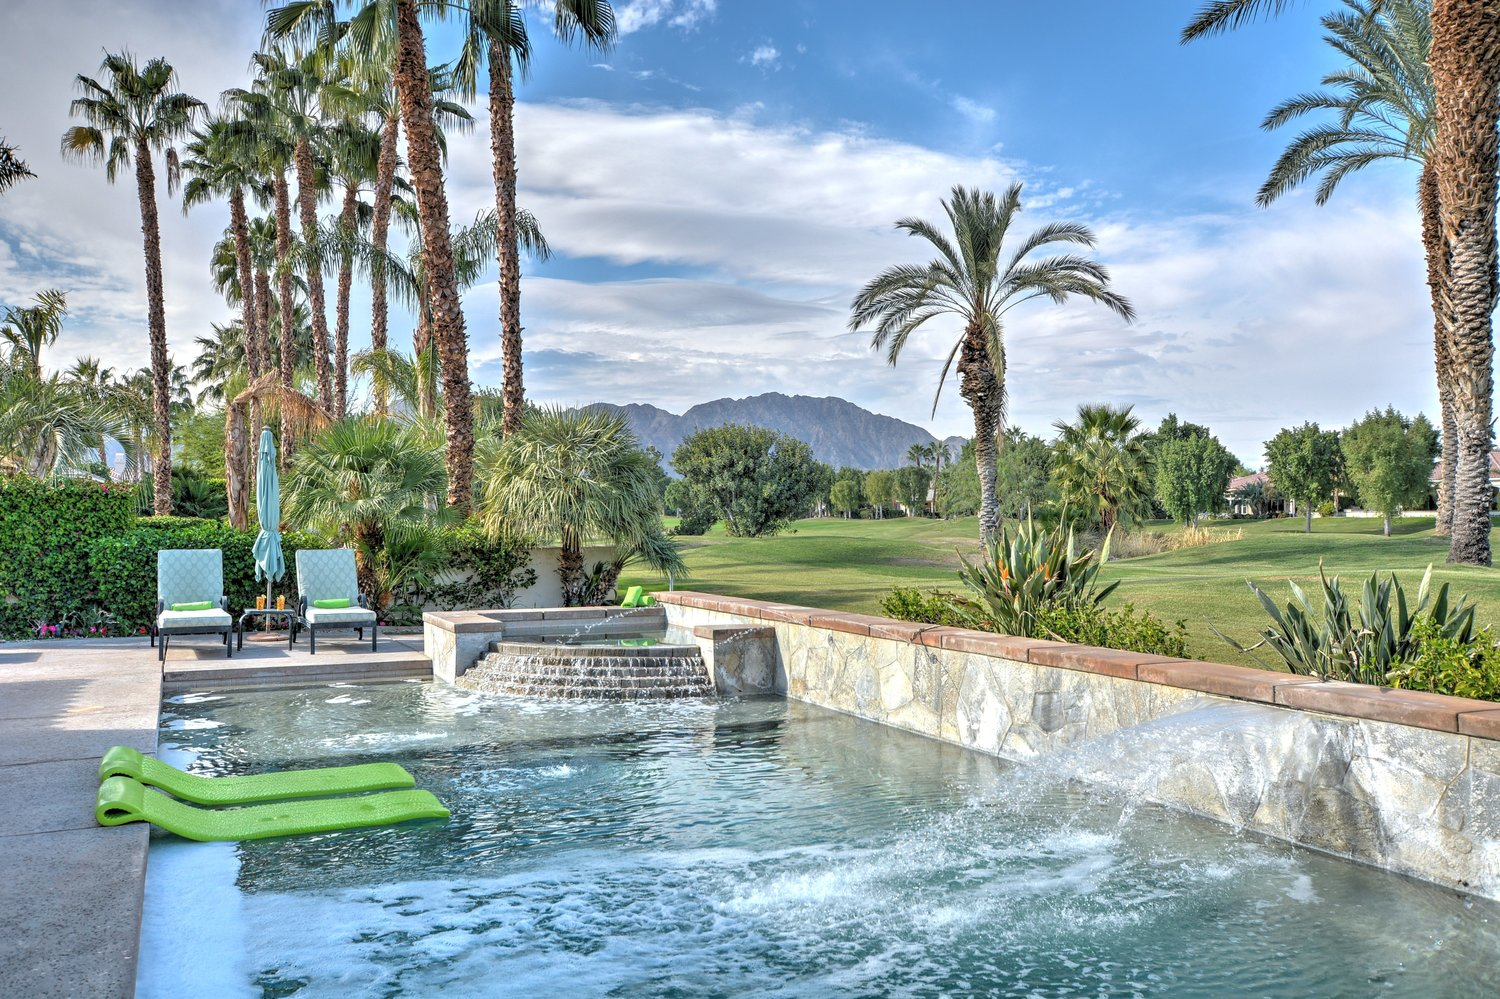 81400 Golf View Dr, La Quinta